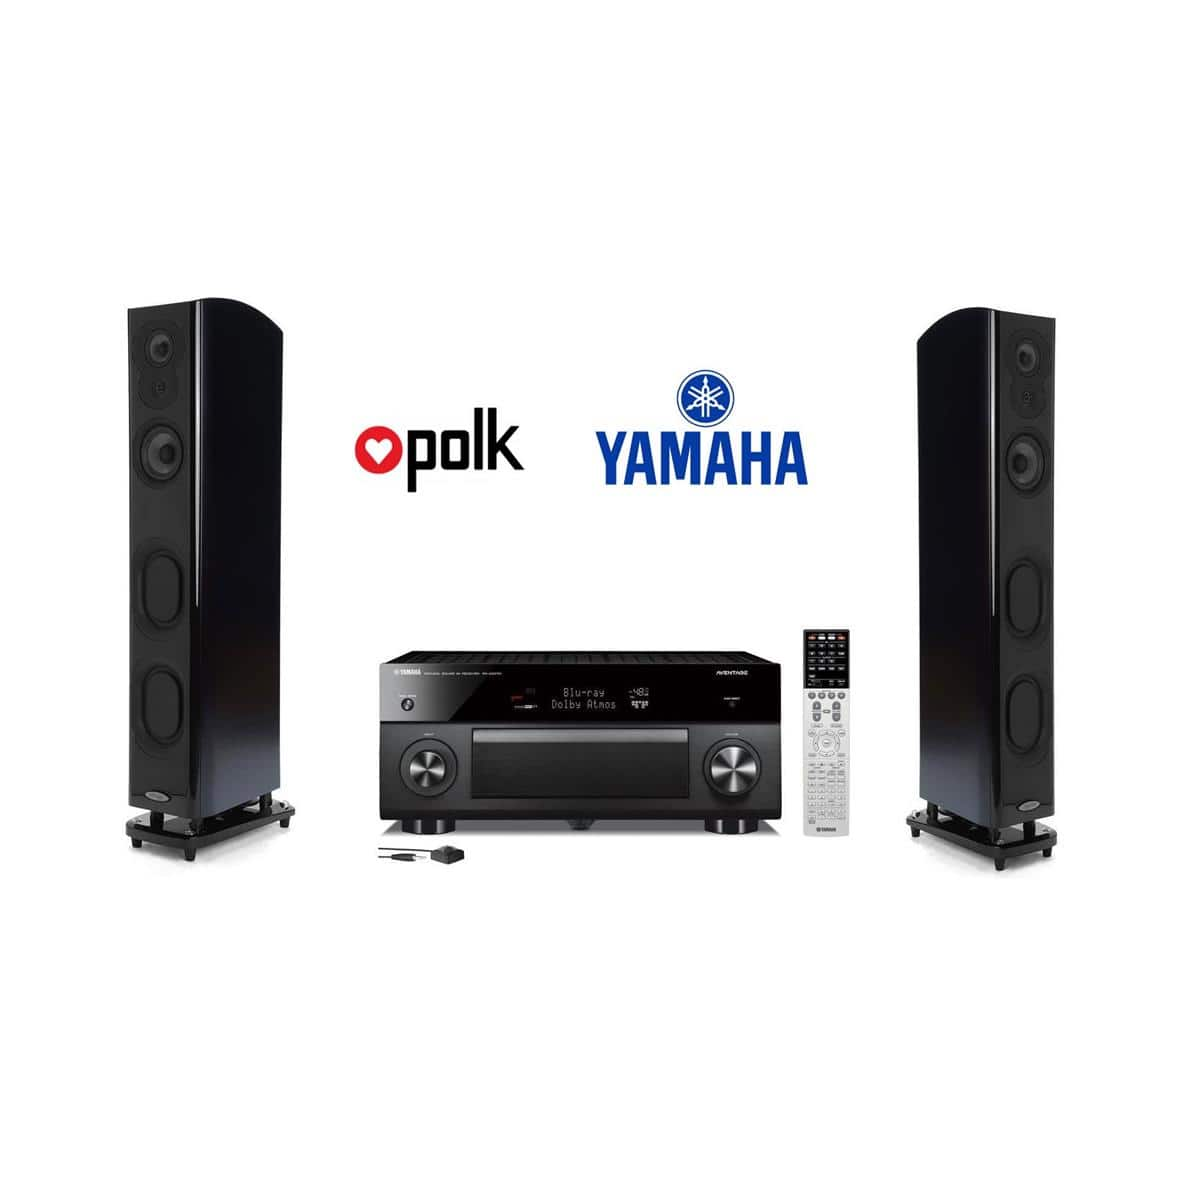 polk lsim speakers m705 pair yamaha rx 2070 9 2 ch. Black Bedroom Furniture Sets. Home Design Ideas